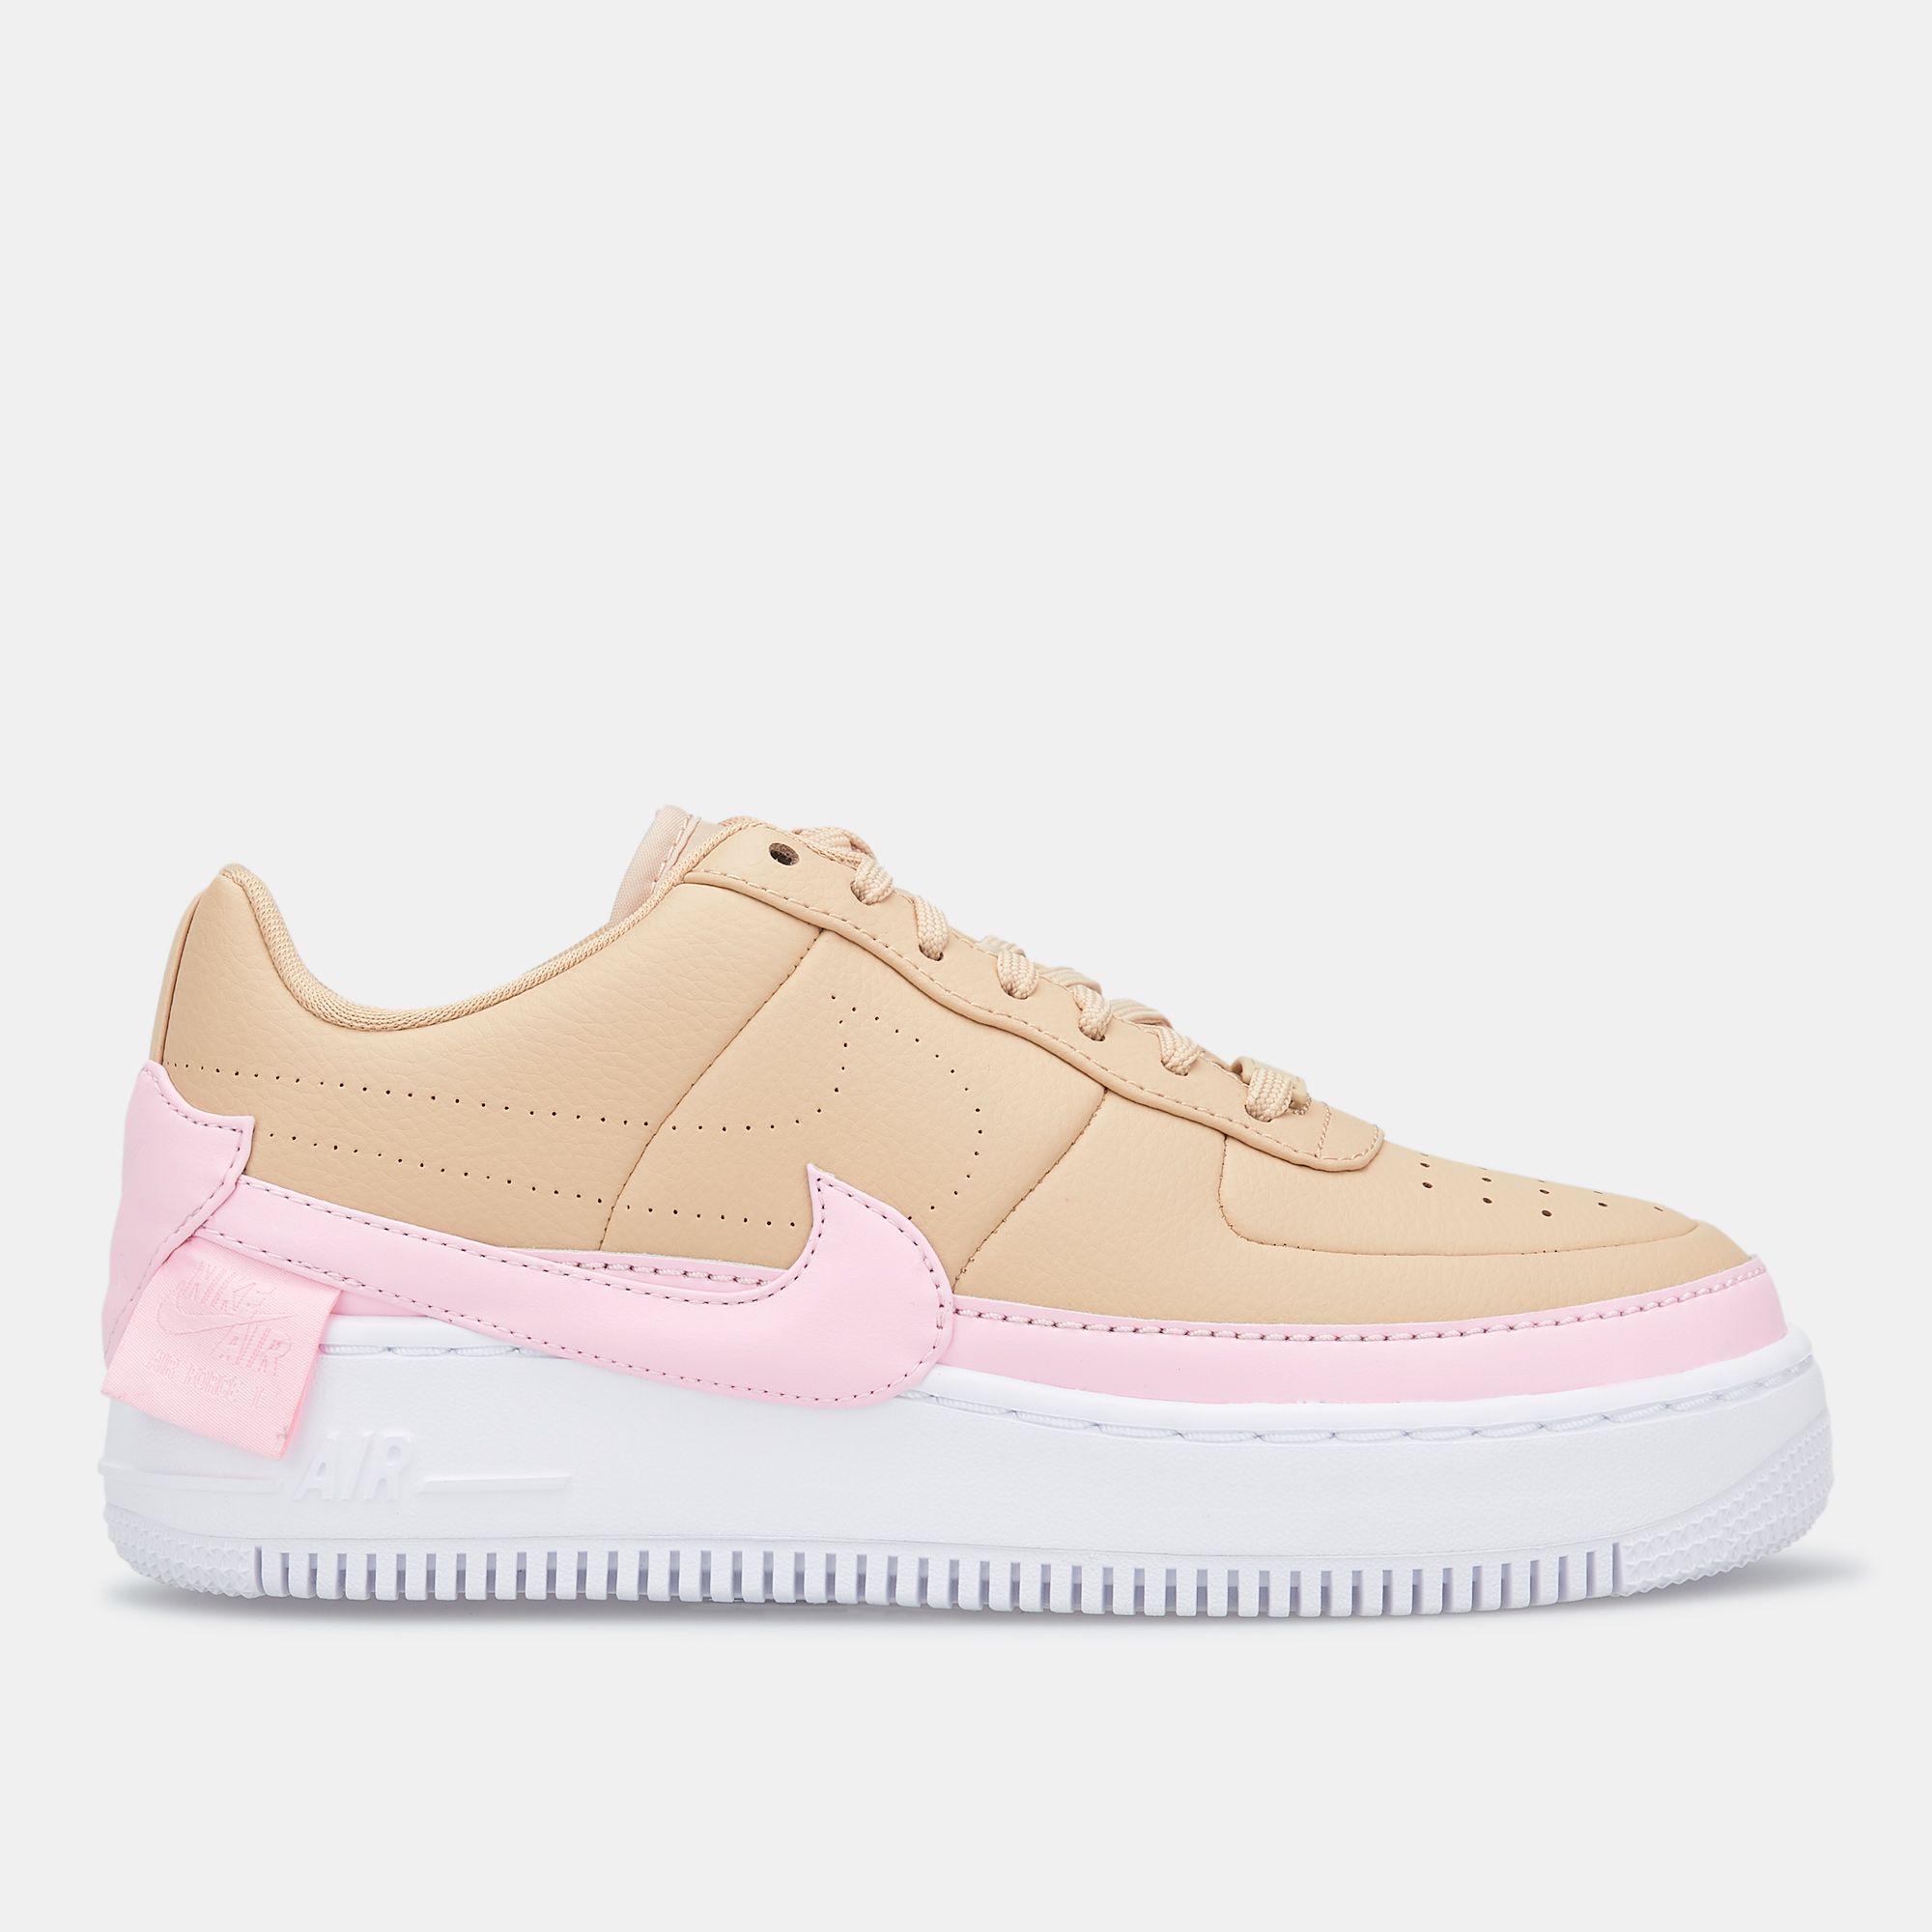 online store d190a 1e4d4 Nike Women s Air Force 1 Jester XX Shoe   Sneakers   Shoes   Sports Fashion    Sports   SSS